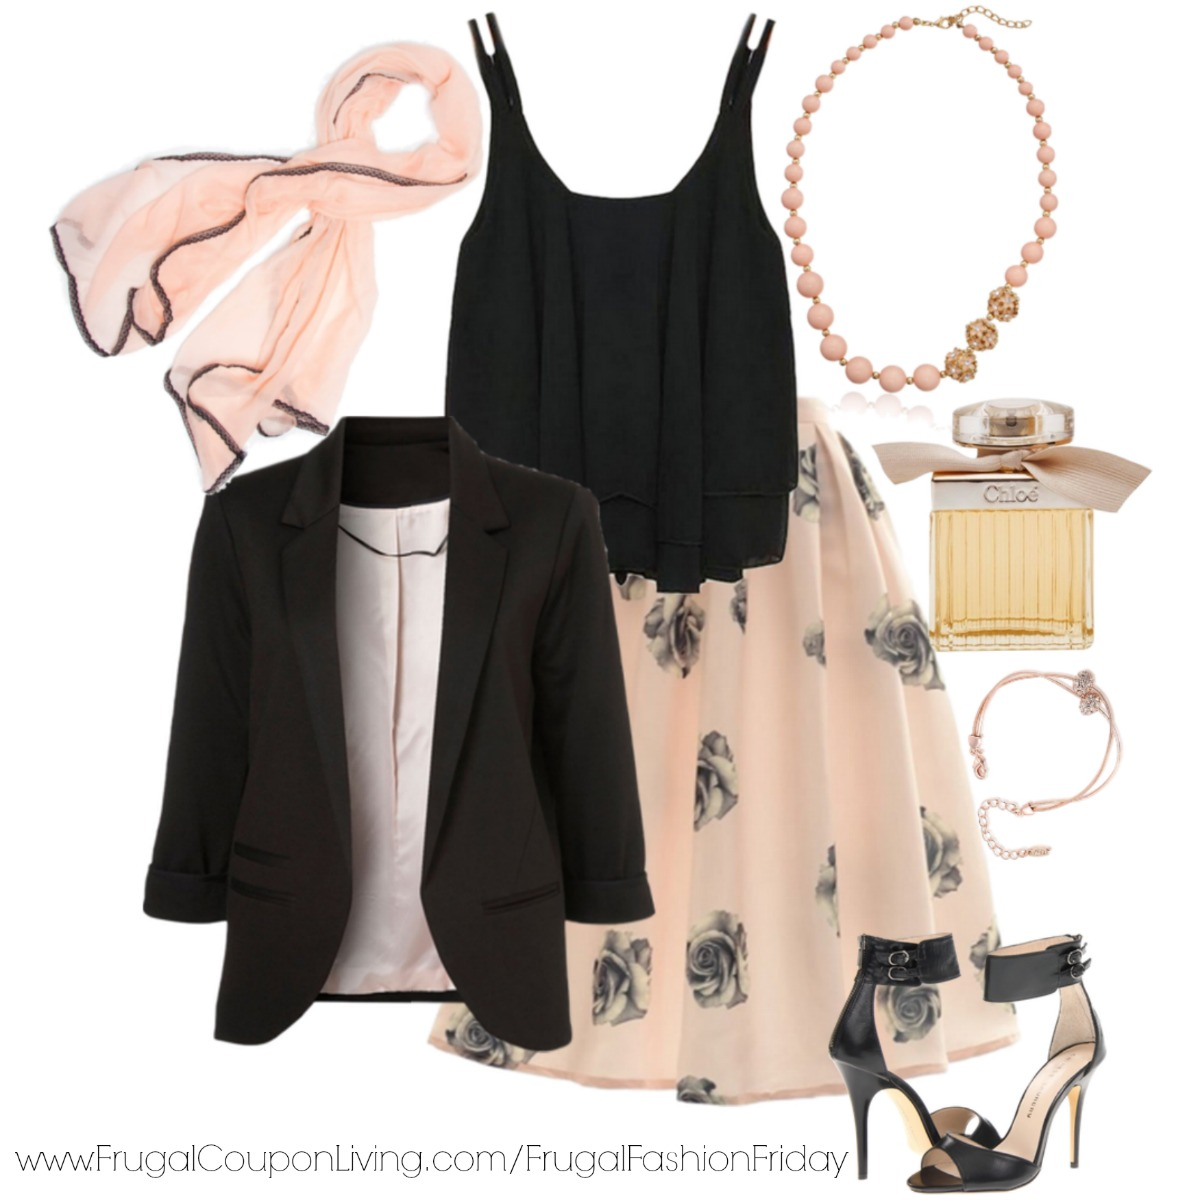 romantic-outfit-frugal-fashion-friday-frugal-coupon-living-url